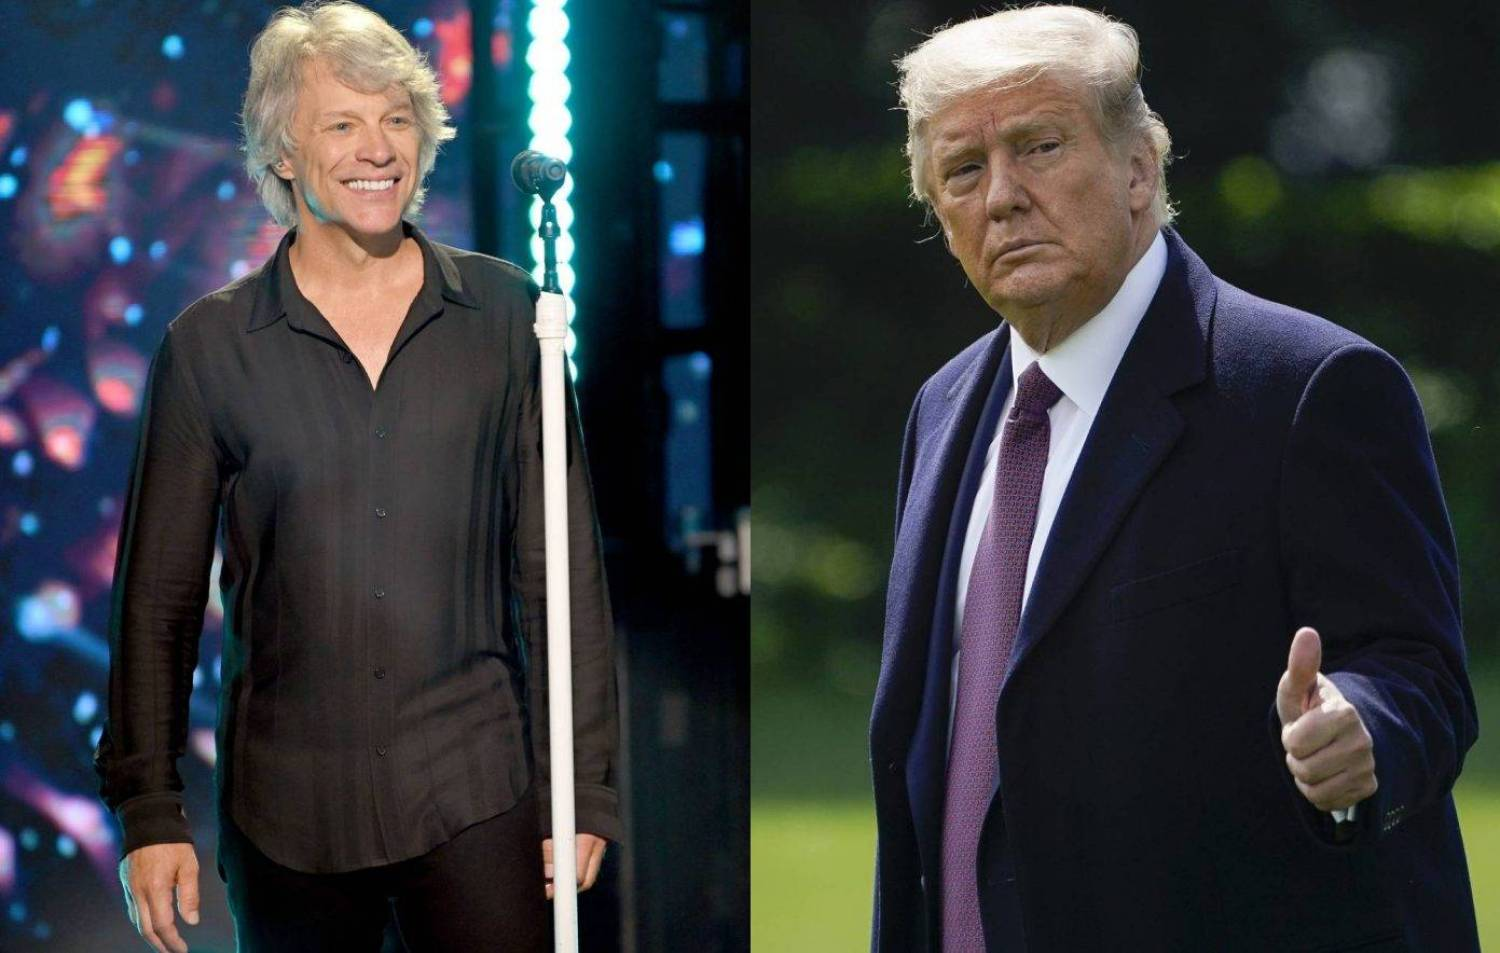 Jon Bon Jovi Reflects On 'Scarring' Trump Feud After Rival Bids To Buy NFL Team